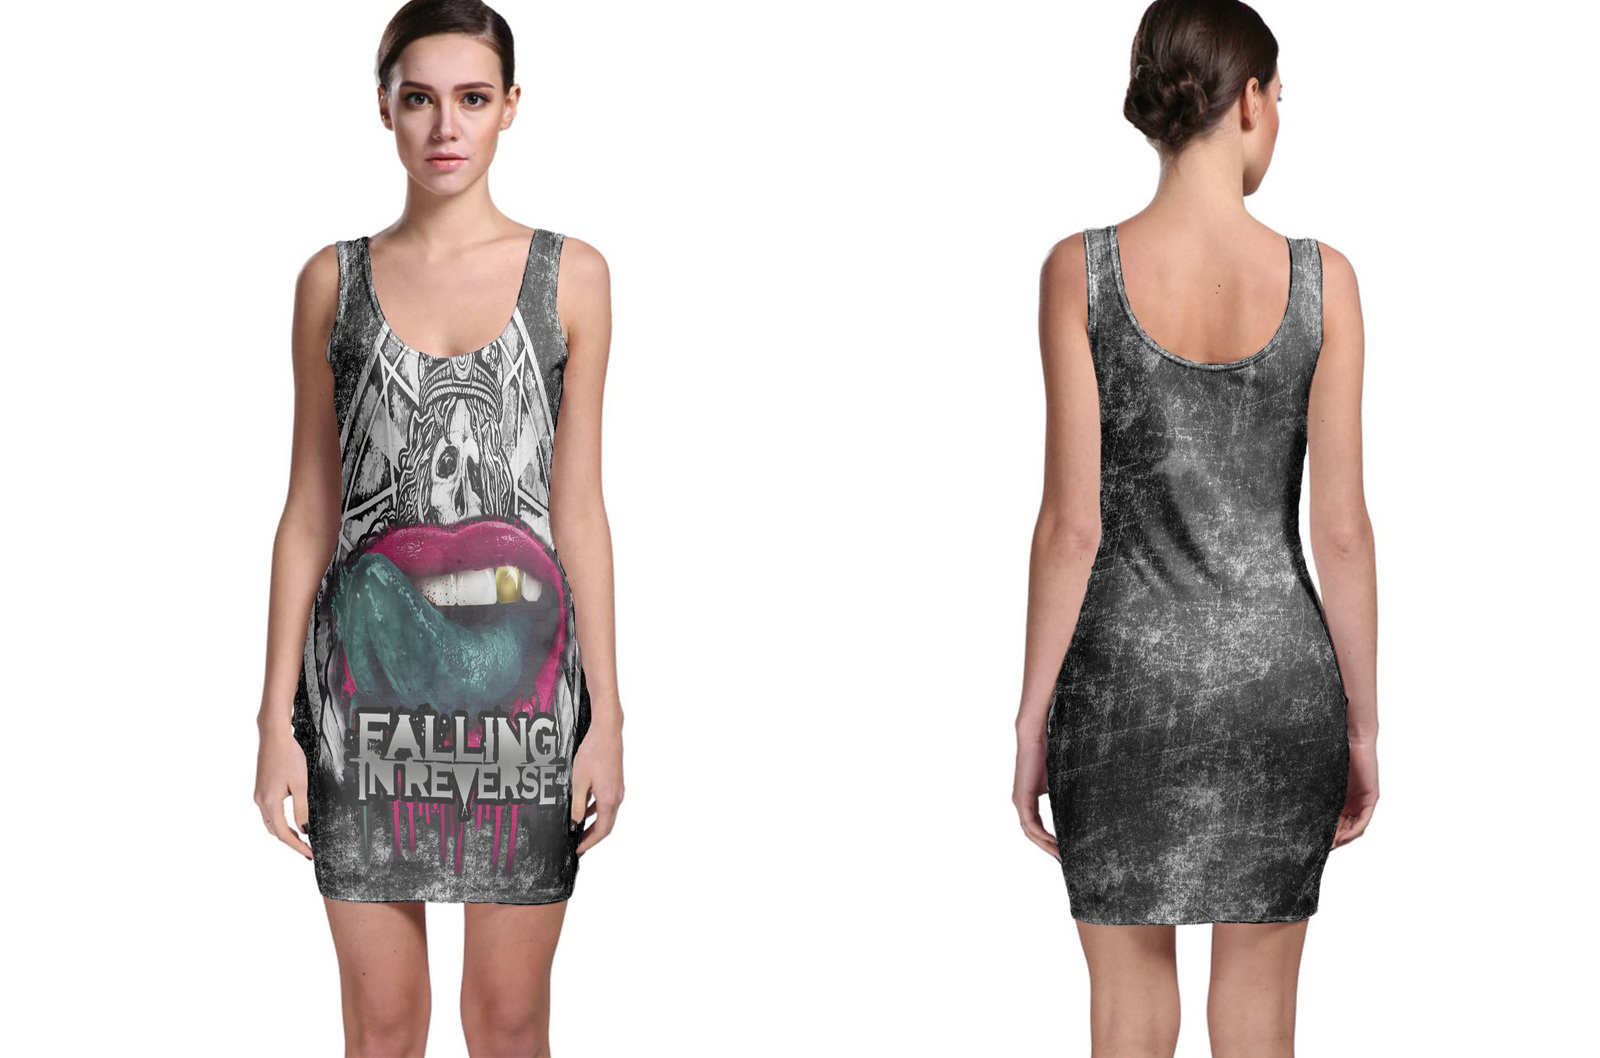 Bodycondress falling in reverse band